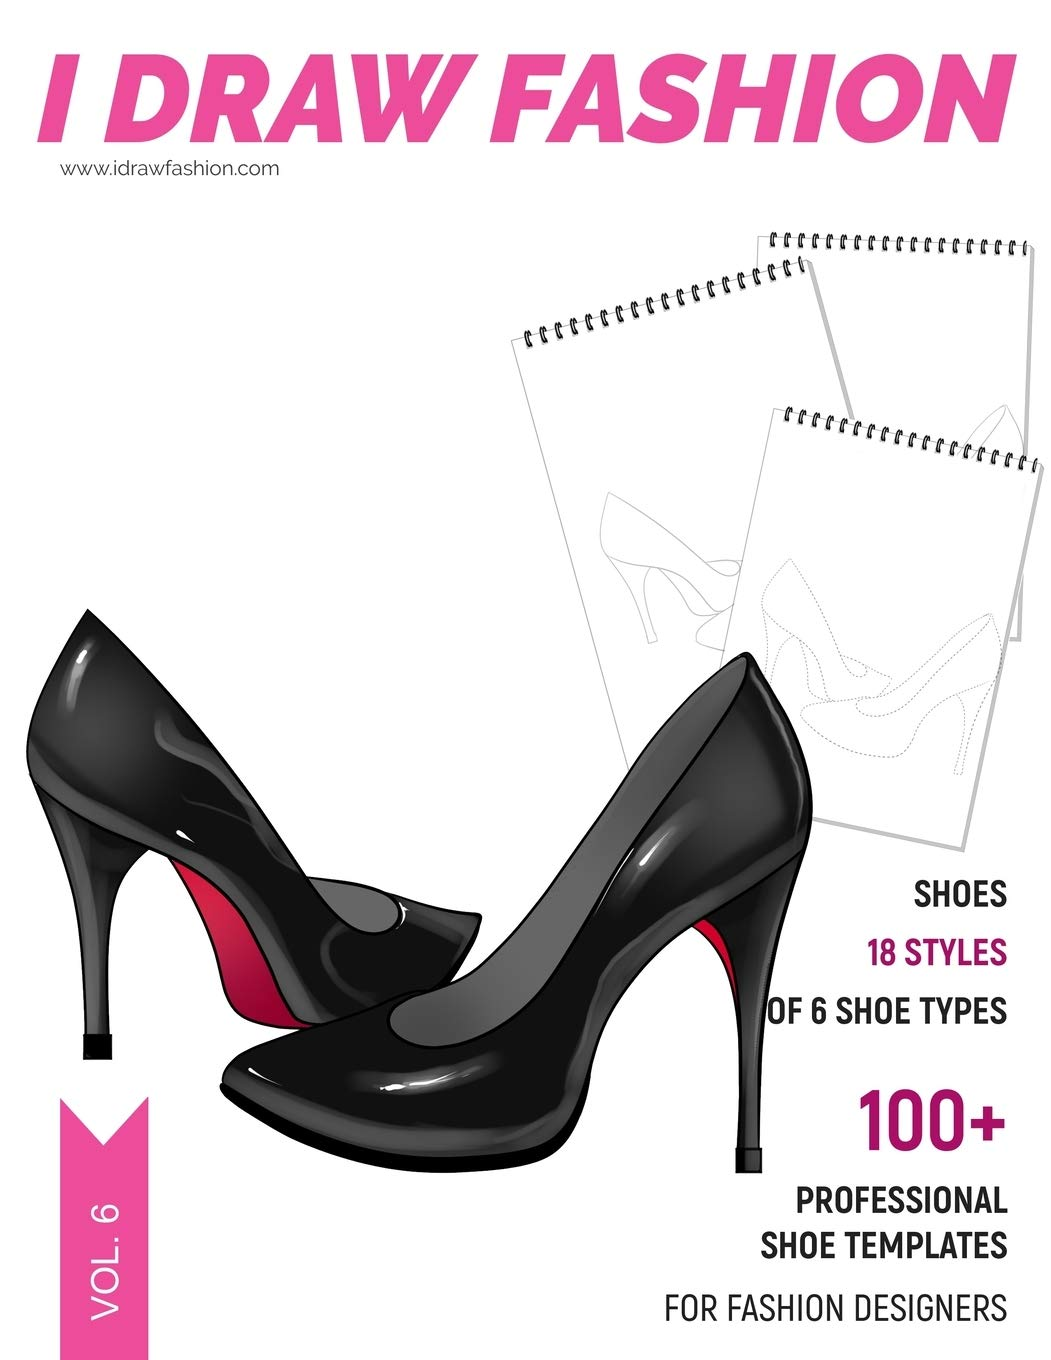 Shoes 100 Professional Shoe Templates For Fashion Designers Fashion Sketchpad With 18 Styles Of 6 Shoe Types Fashion I Draw 9781689699396 Amazon Com Books